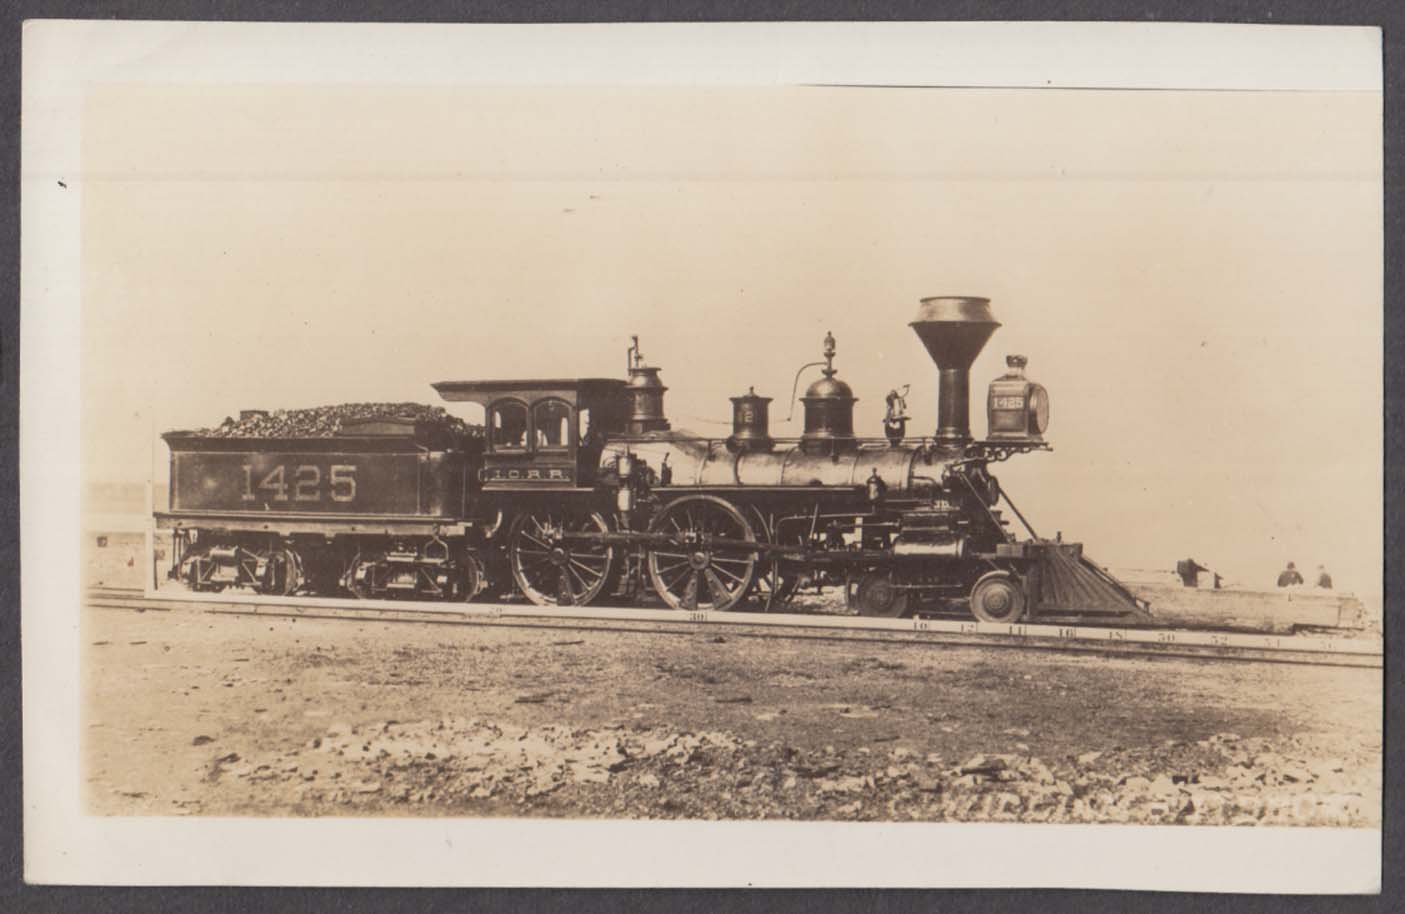 .Illinois Central RR 8-wheeler steam locomotive 4-4-0 #1425 photo